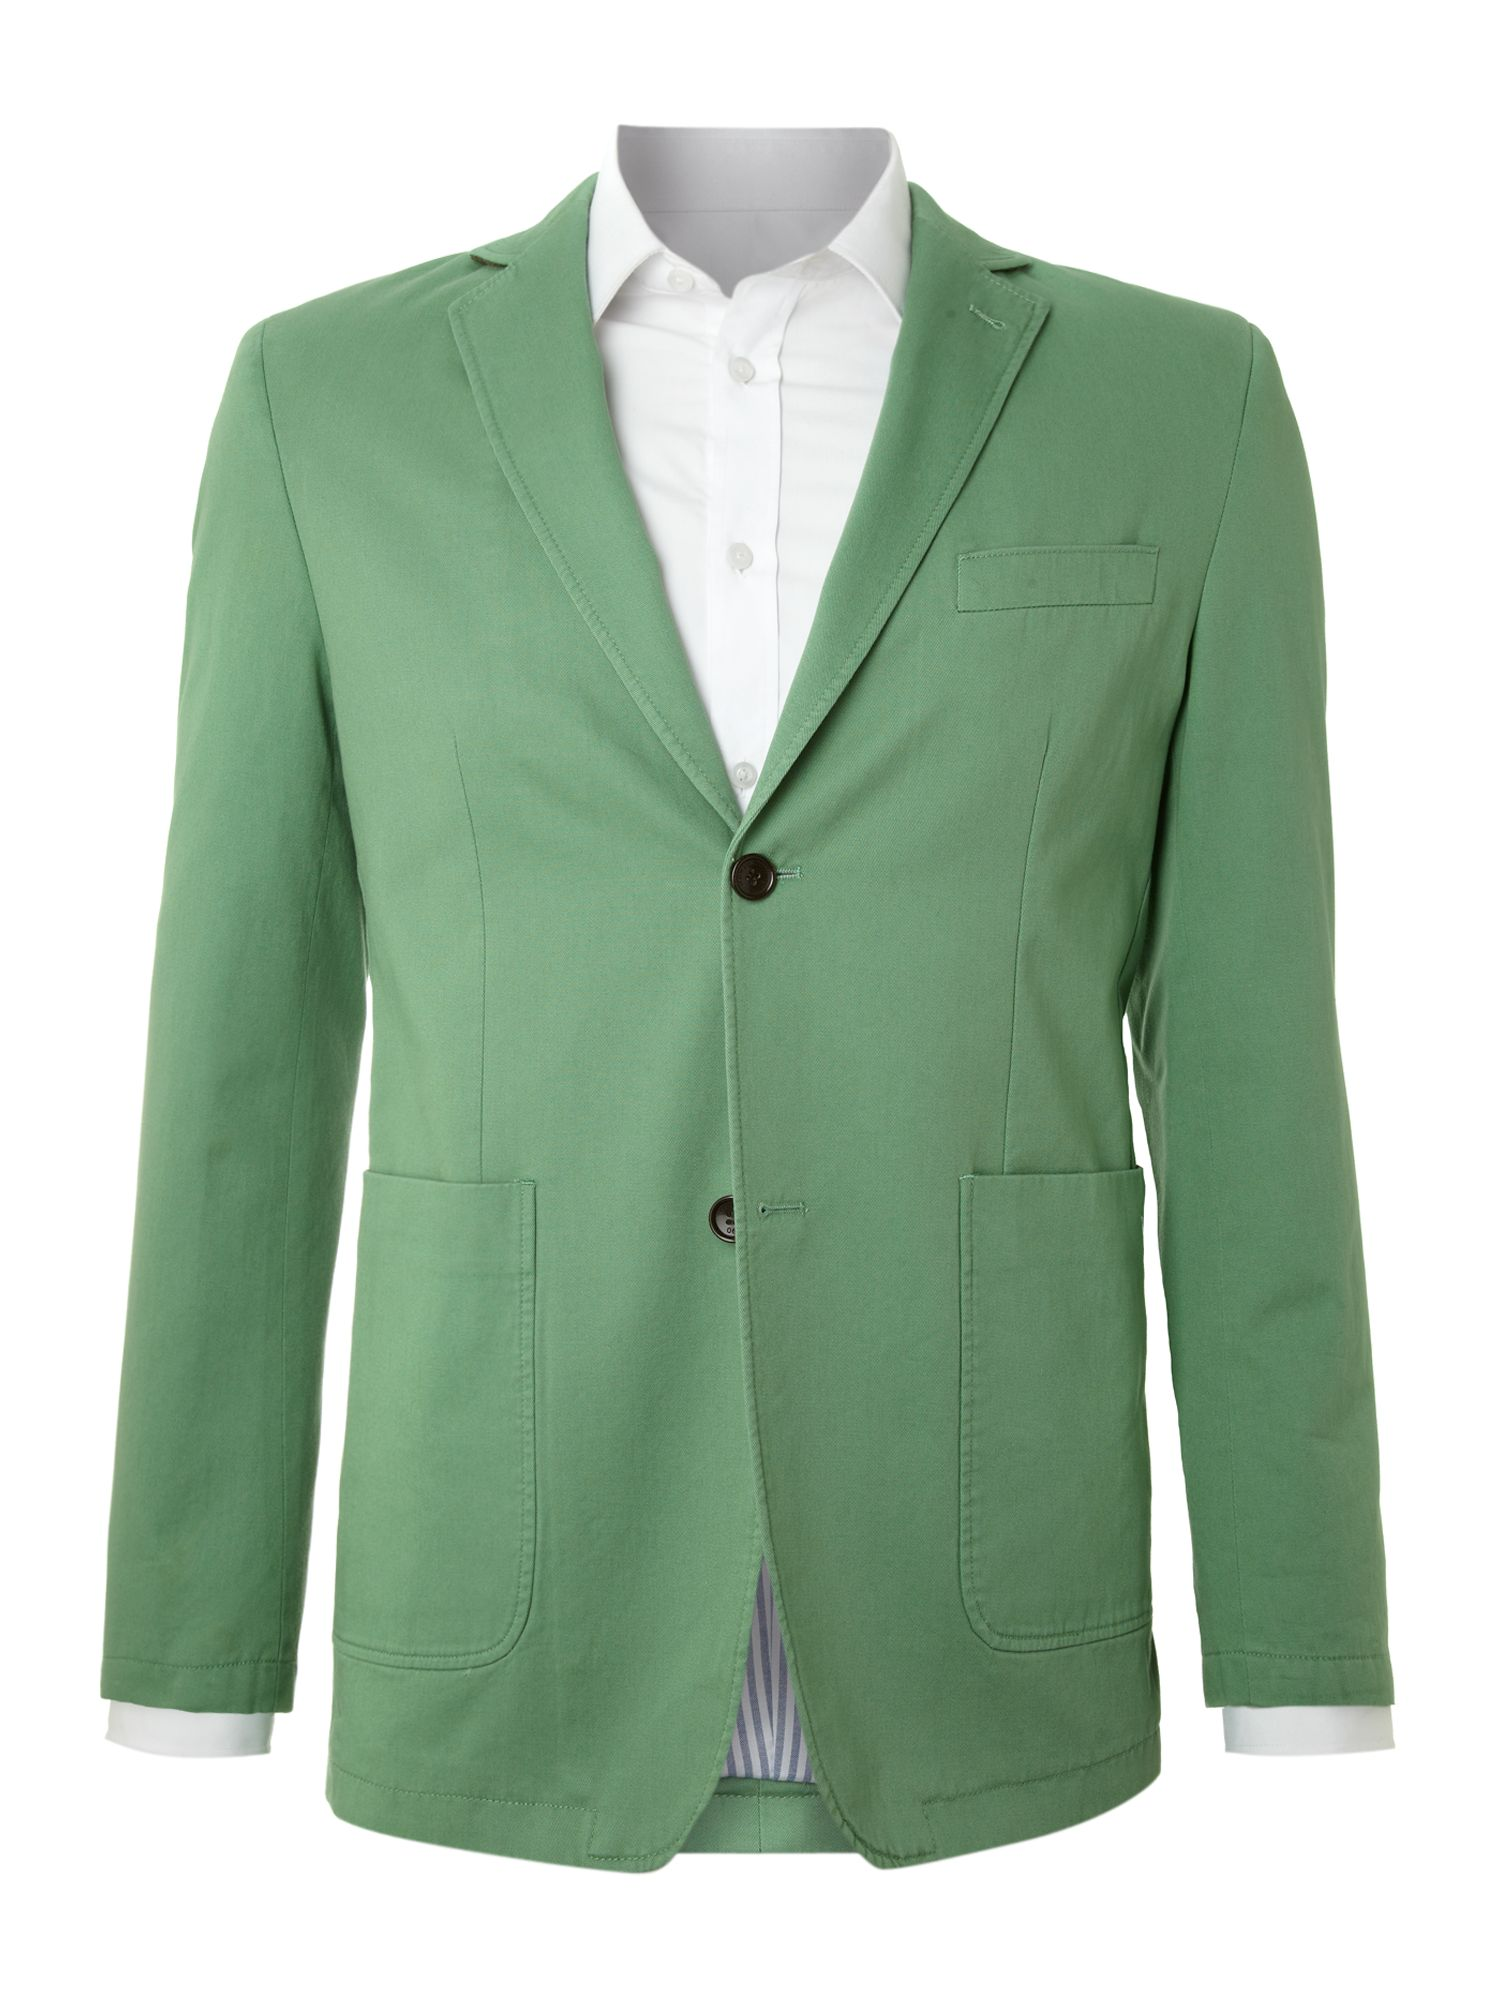 Pembroke two pocket blazer